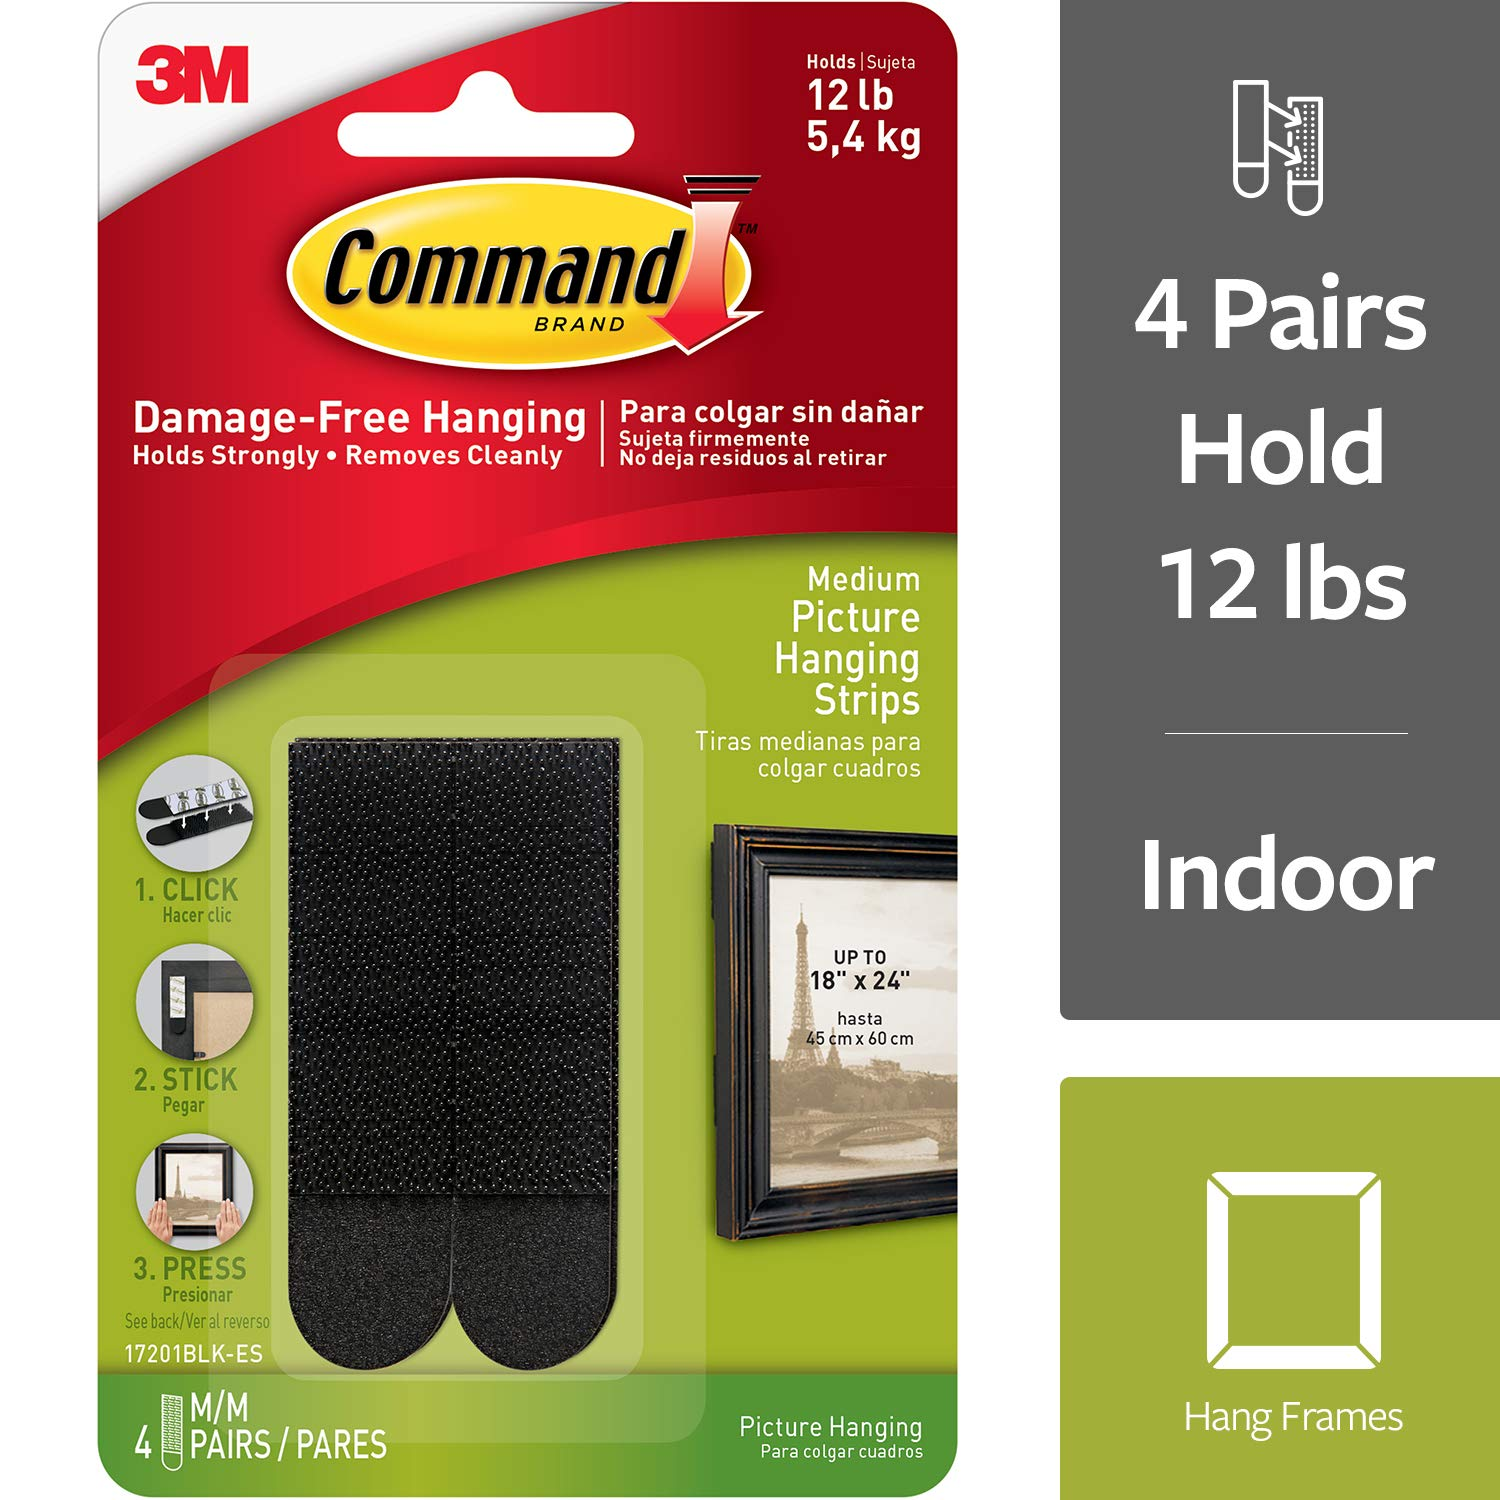 Command Picture Hanging Strips, 6-packages (24 pairs total) (17201BLK-ES)